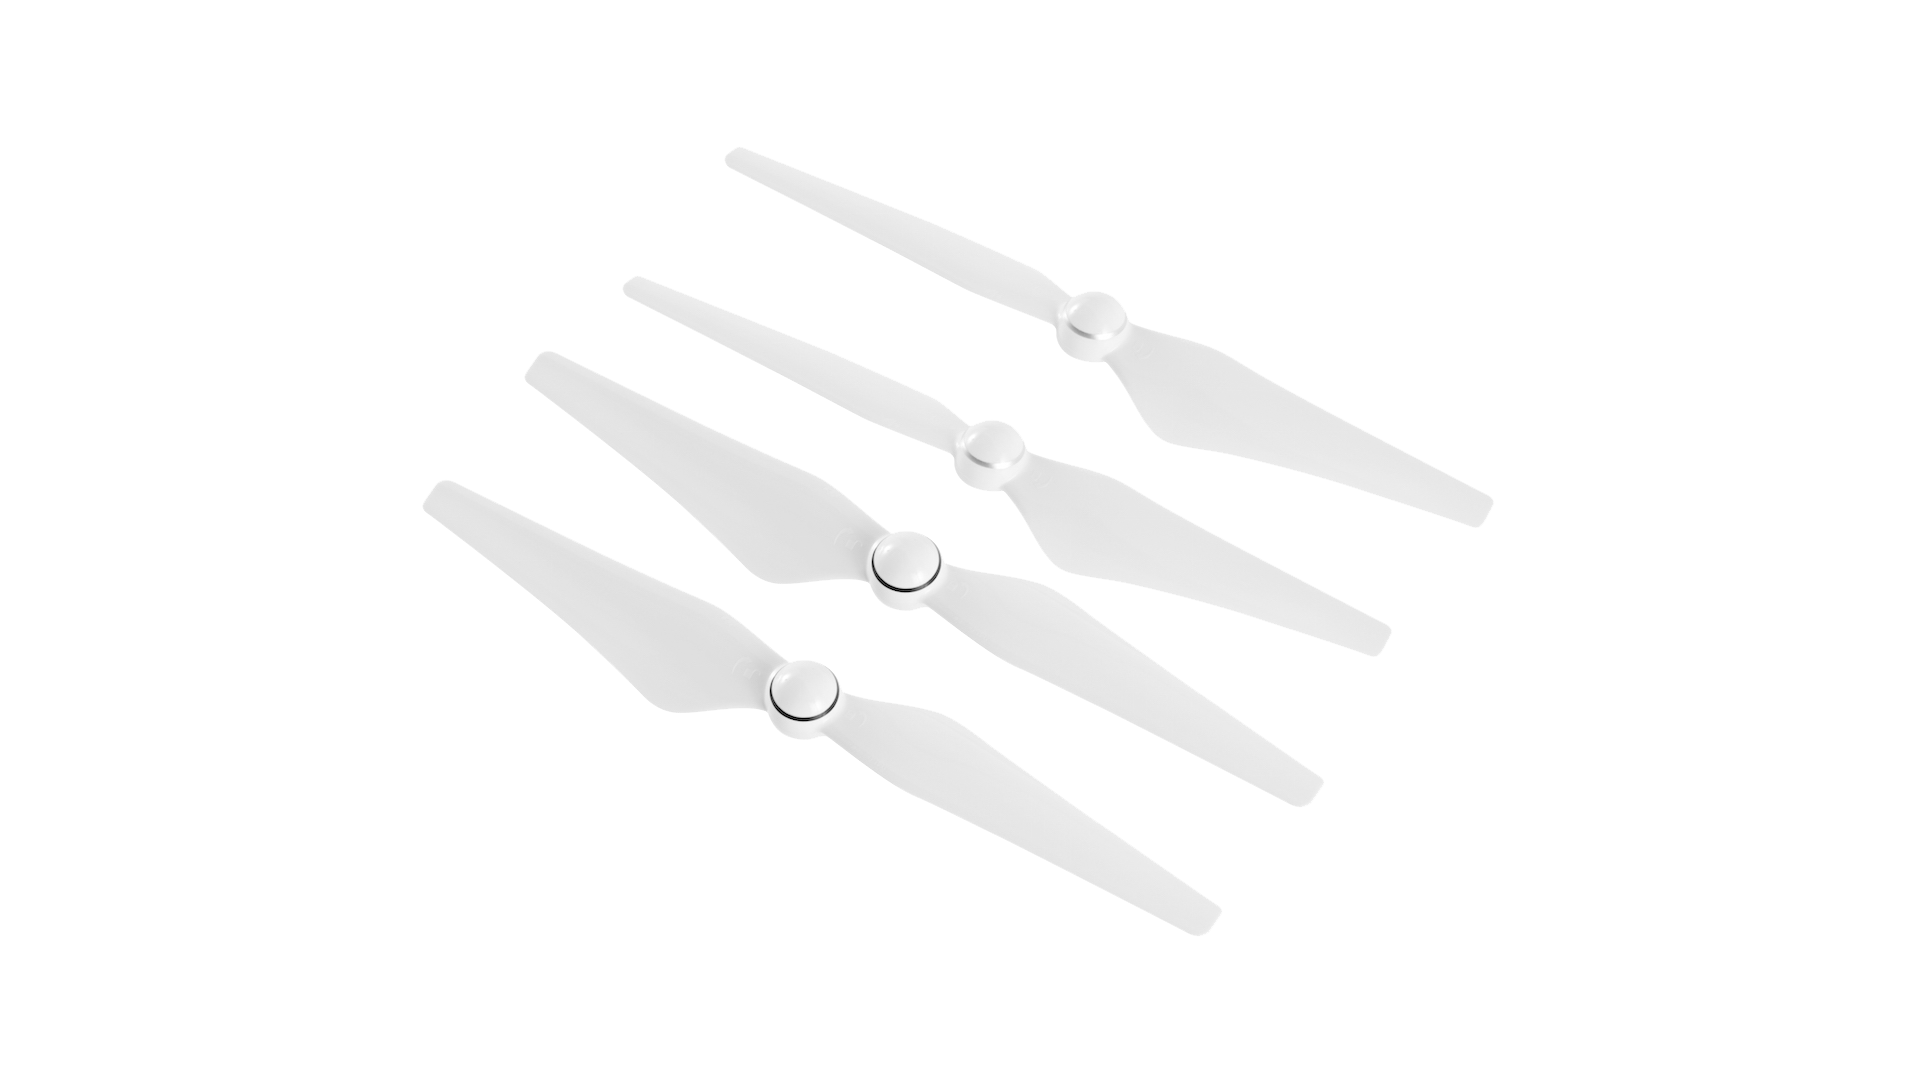 DJI Phantom 4 Propeller / Blades 4er Set